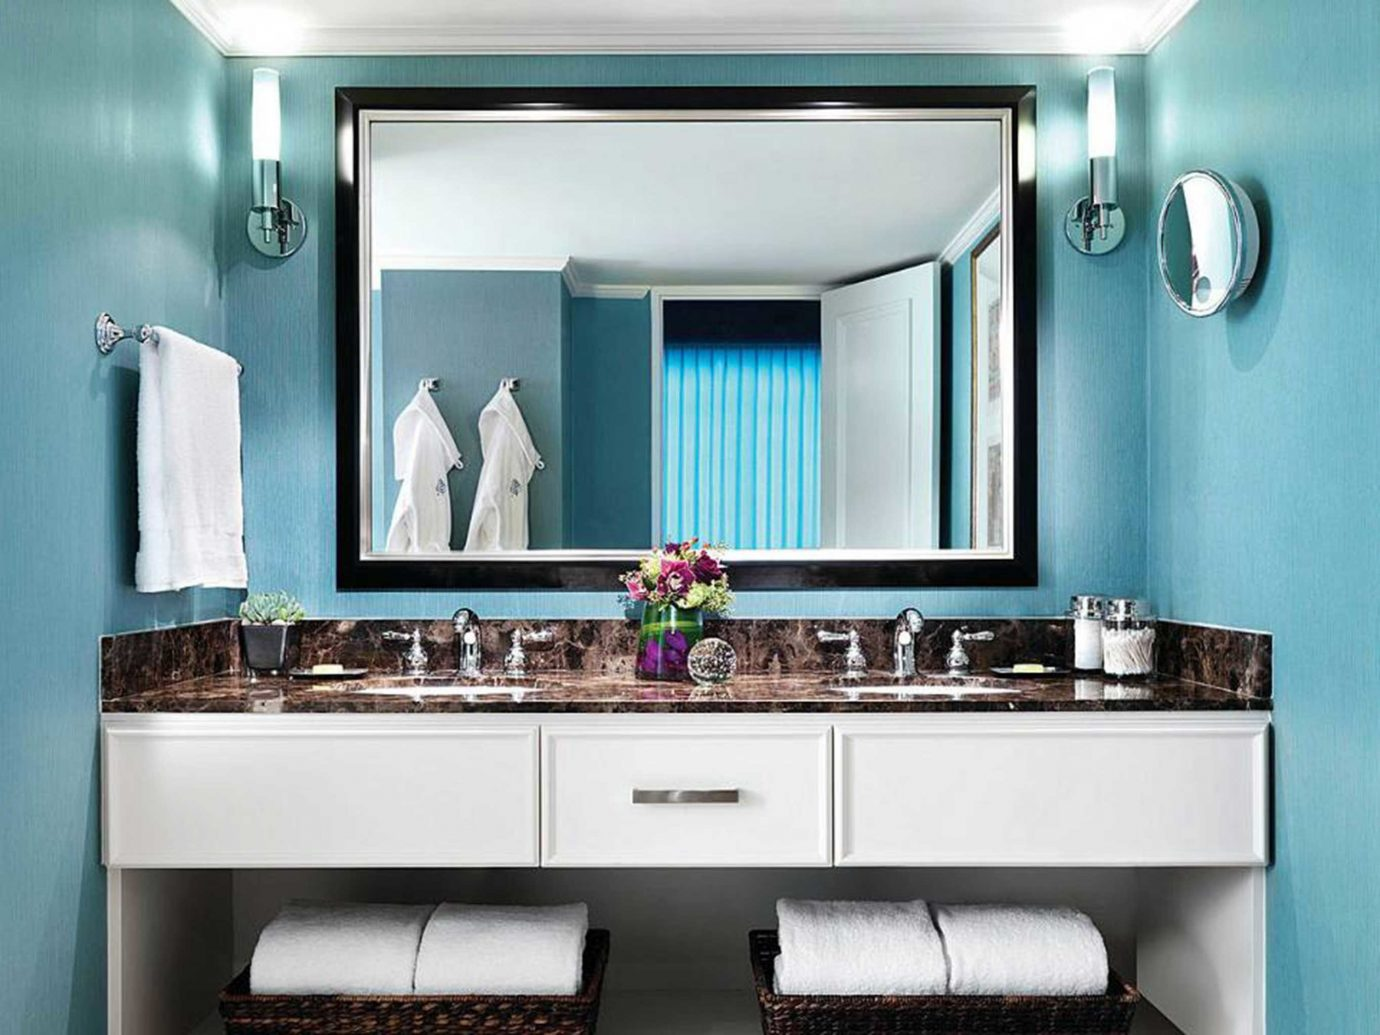 Bath Classic Hotels Living Luxury Resort indoor bathroom wall room mirror property sink Kitchen home cabinetry interior design estate Design living room